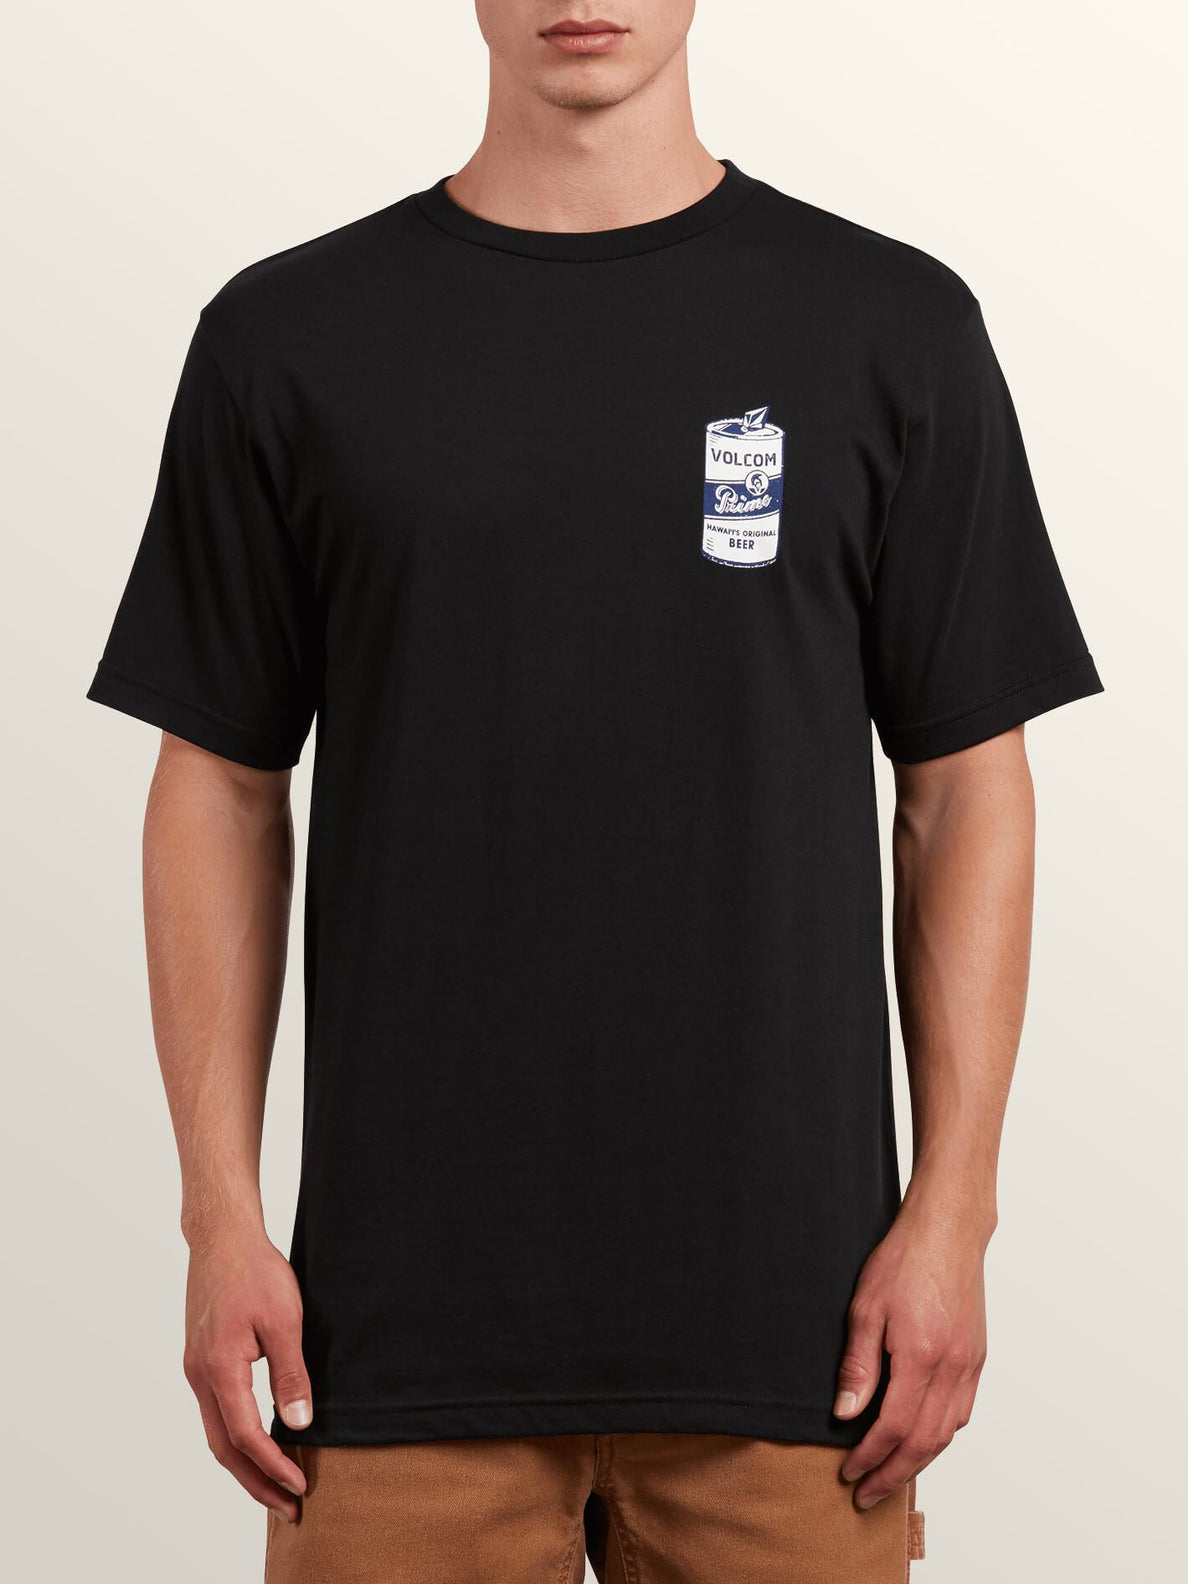 Primo Chug Short Sleeve Tee In Black, Front View